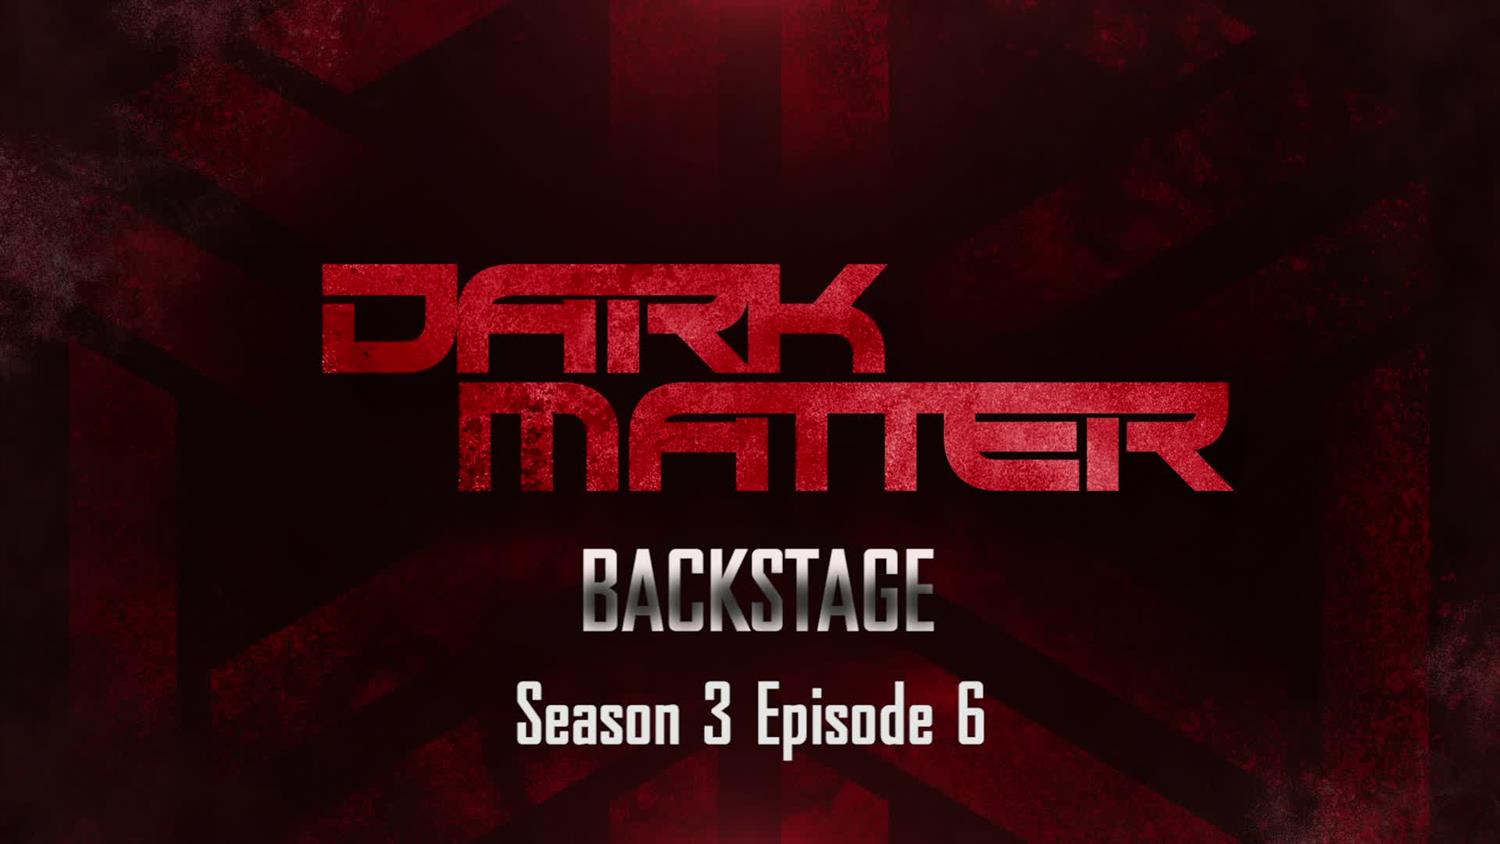 Dark Matter Backstage: Season 3, Episode 6